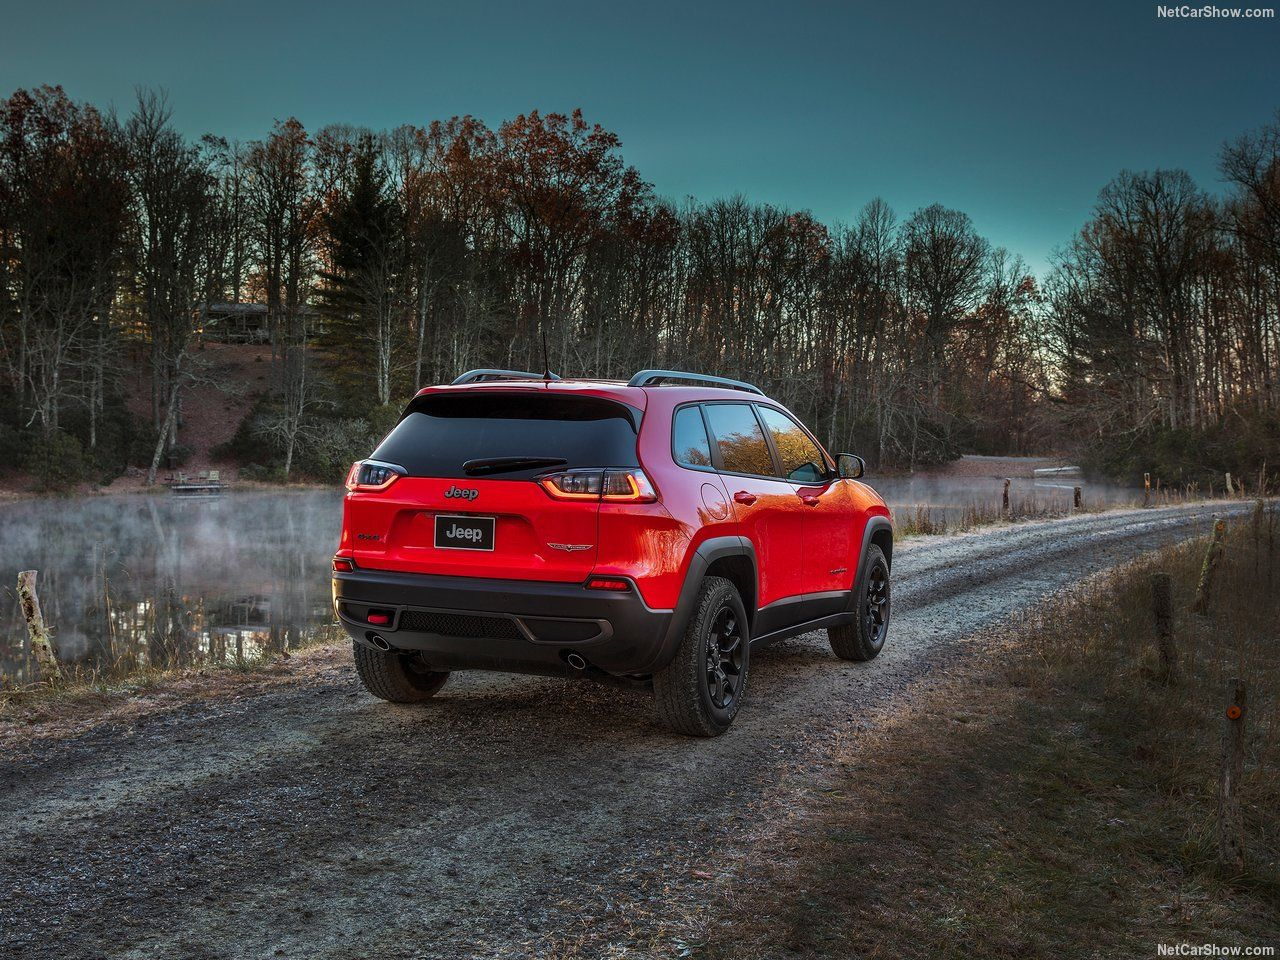 2019 Jeep Cherokee Suv Cars Pinterest Jeeps And Mousepad L200